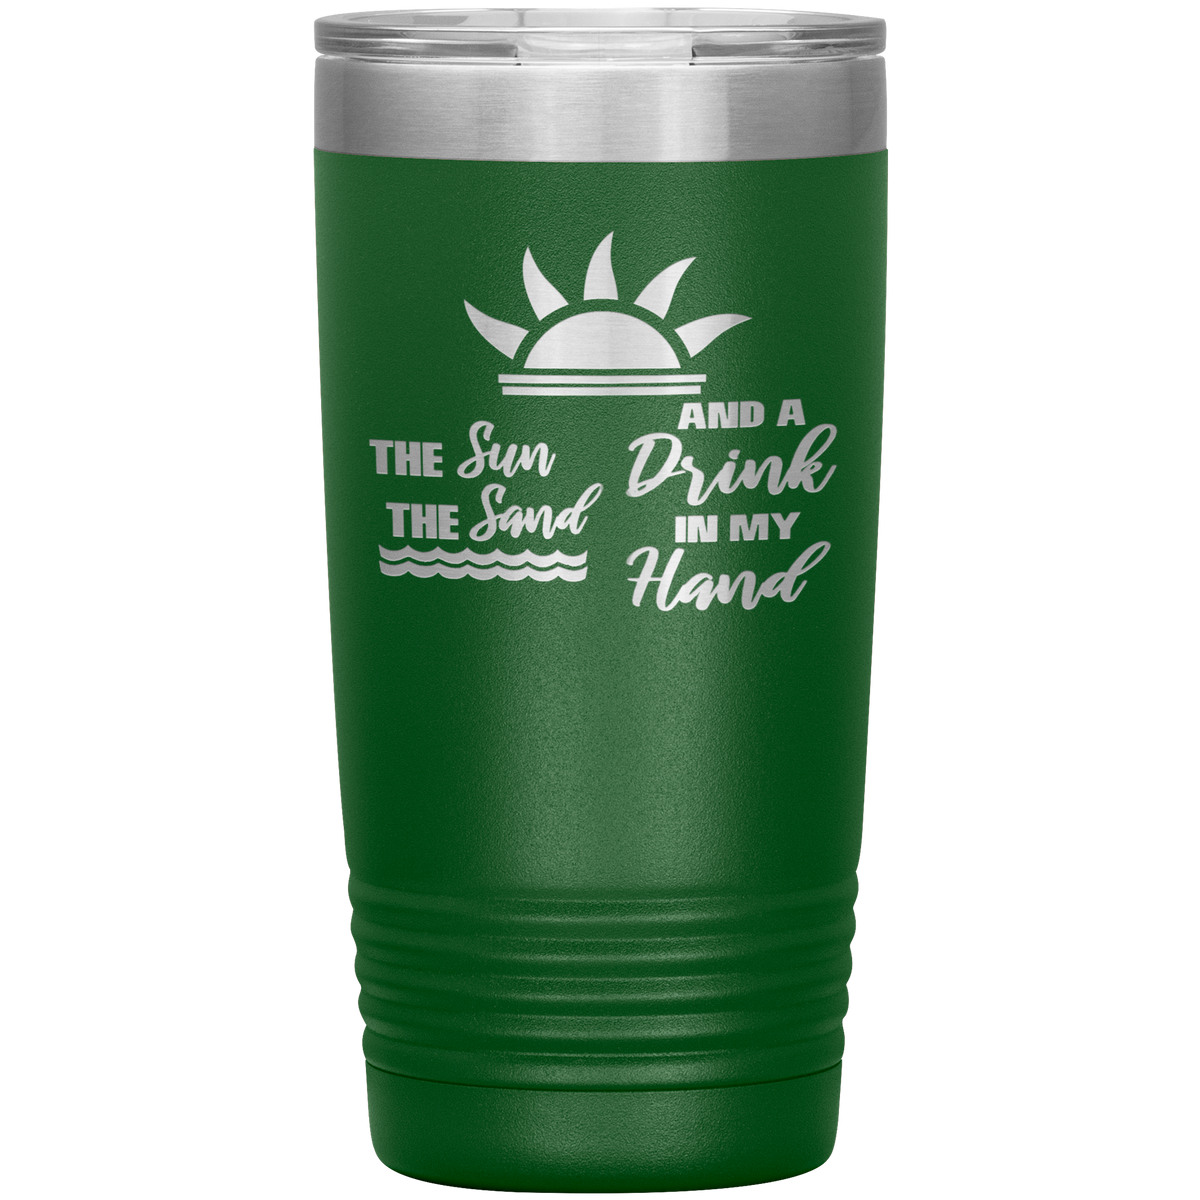 The Sun The Sand Drink In My Hand Tumbler